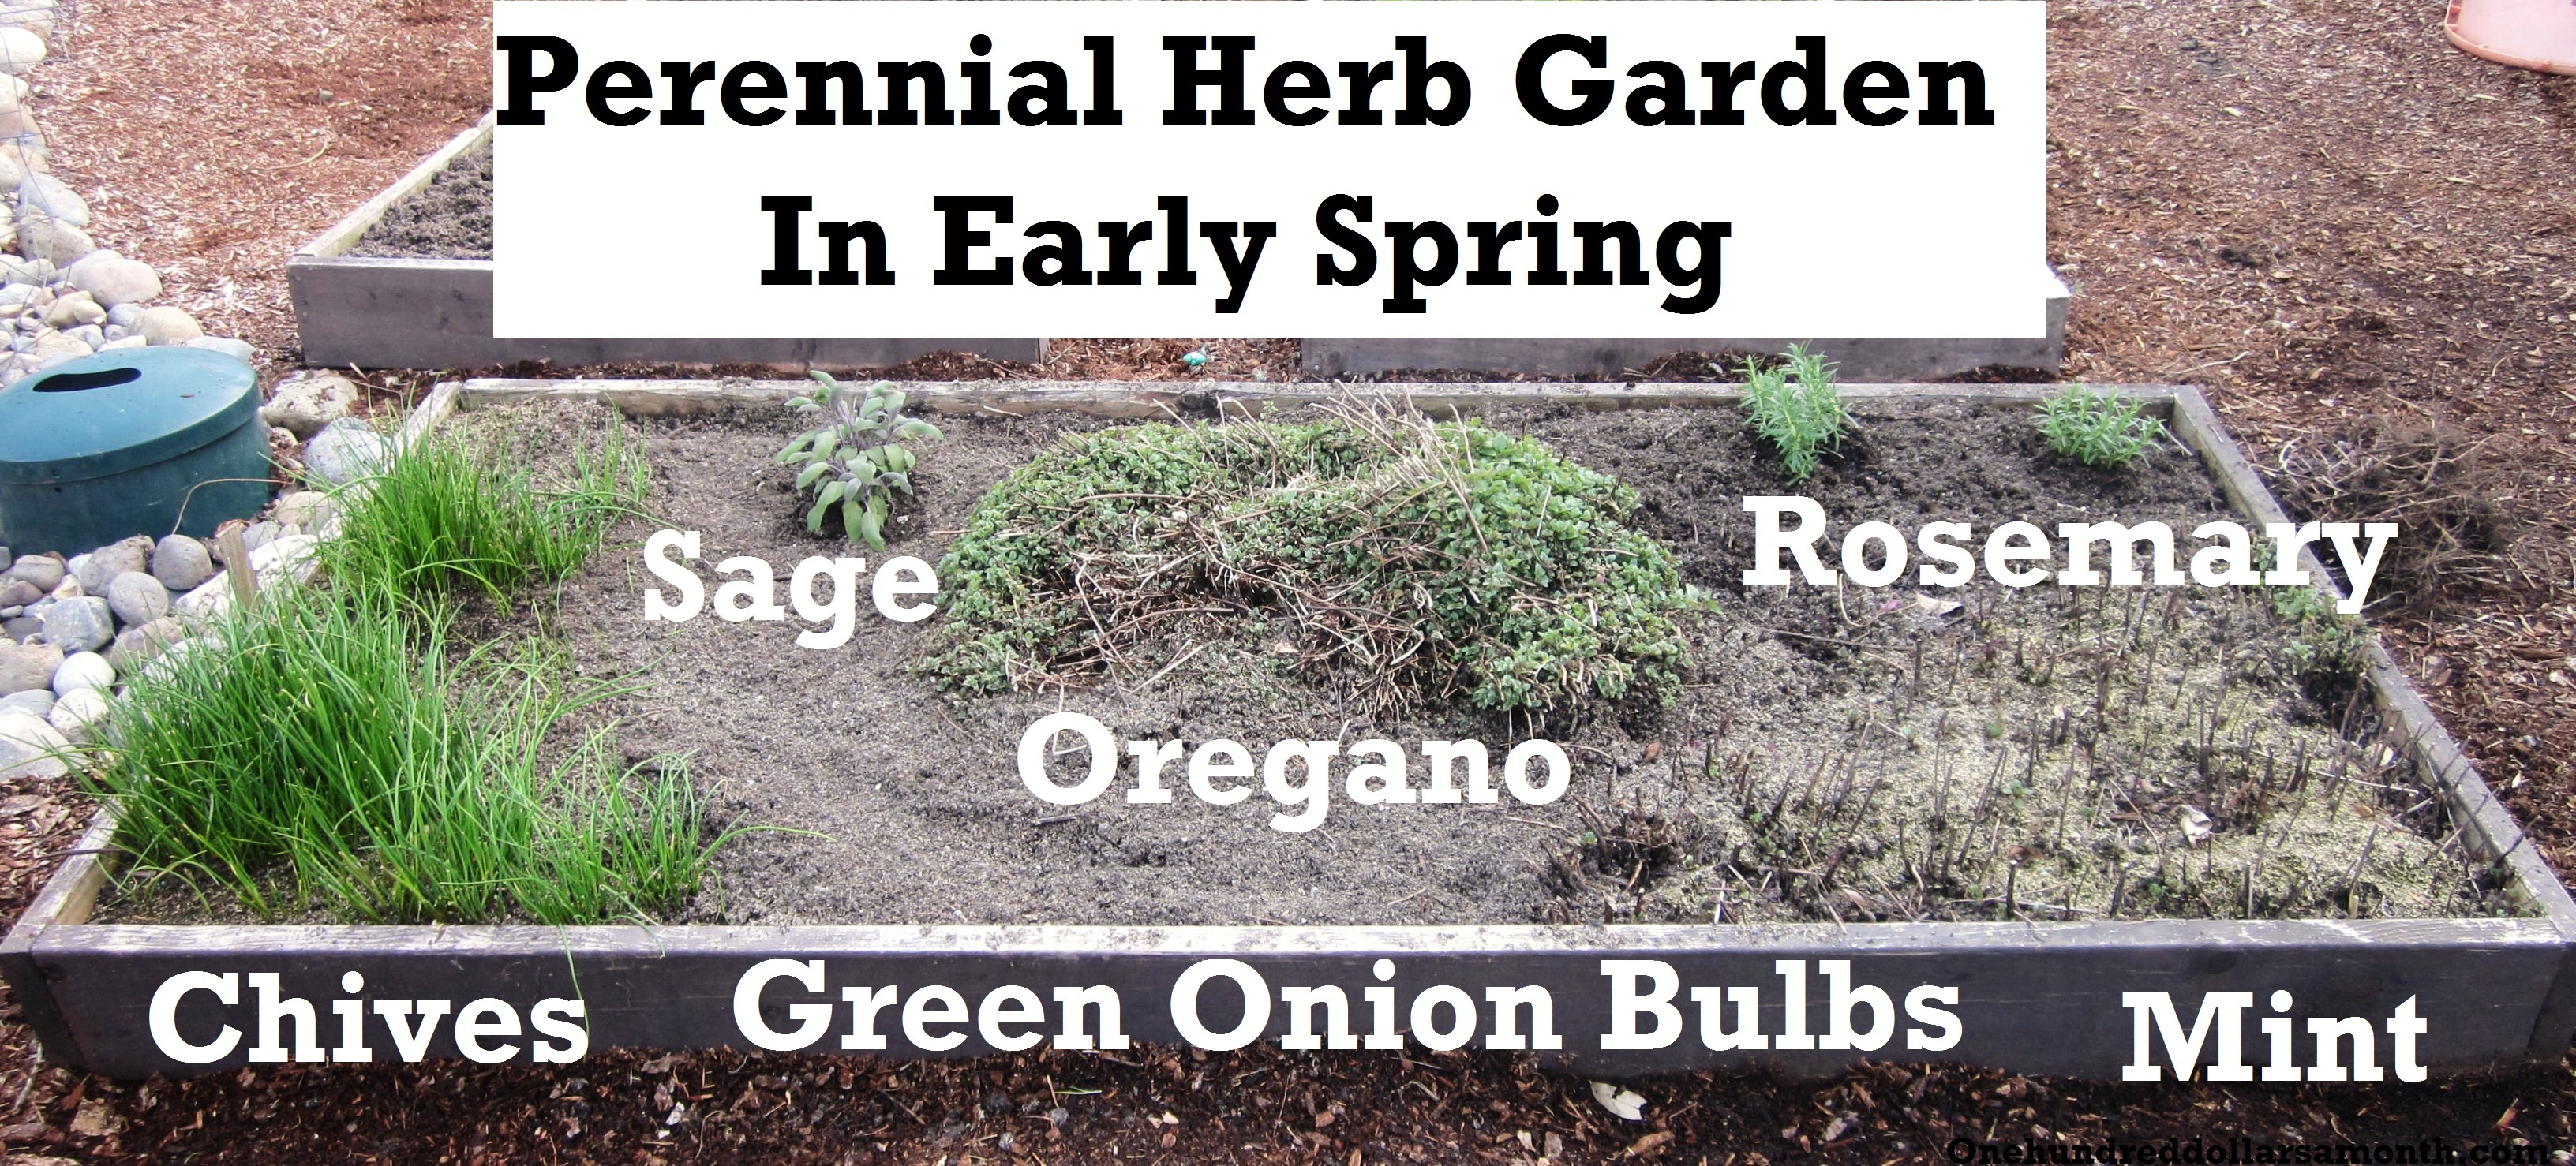 How to Grow Your Own Food: Planting a Perennial Herb Garden